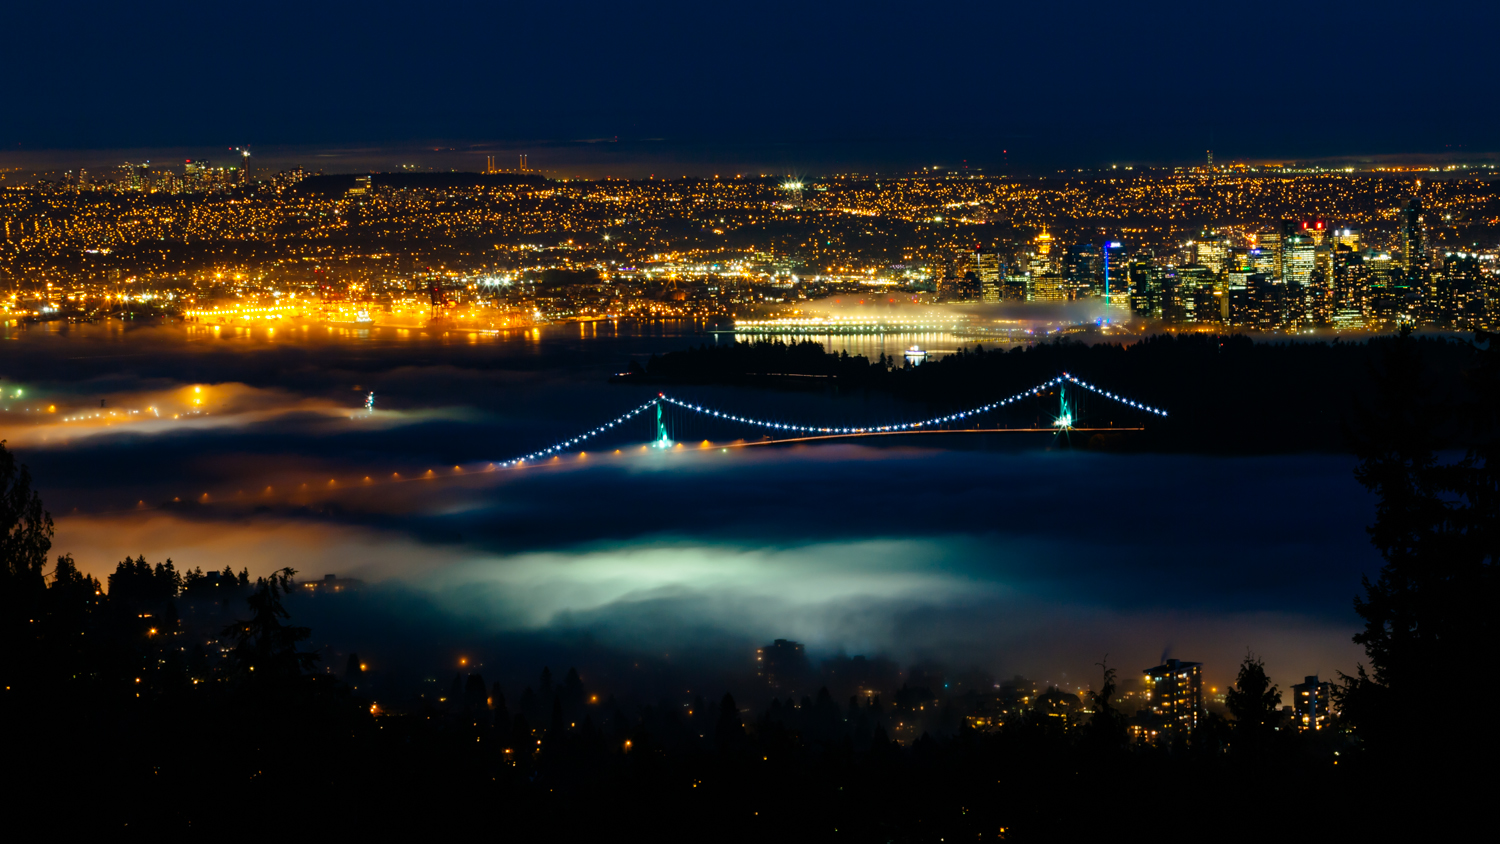 From the perspective of Cypress Mountain, Vancouver was surrounded in fog for an extended period of time during the Winter of 2013.